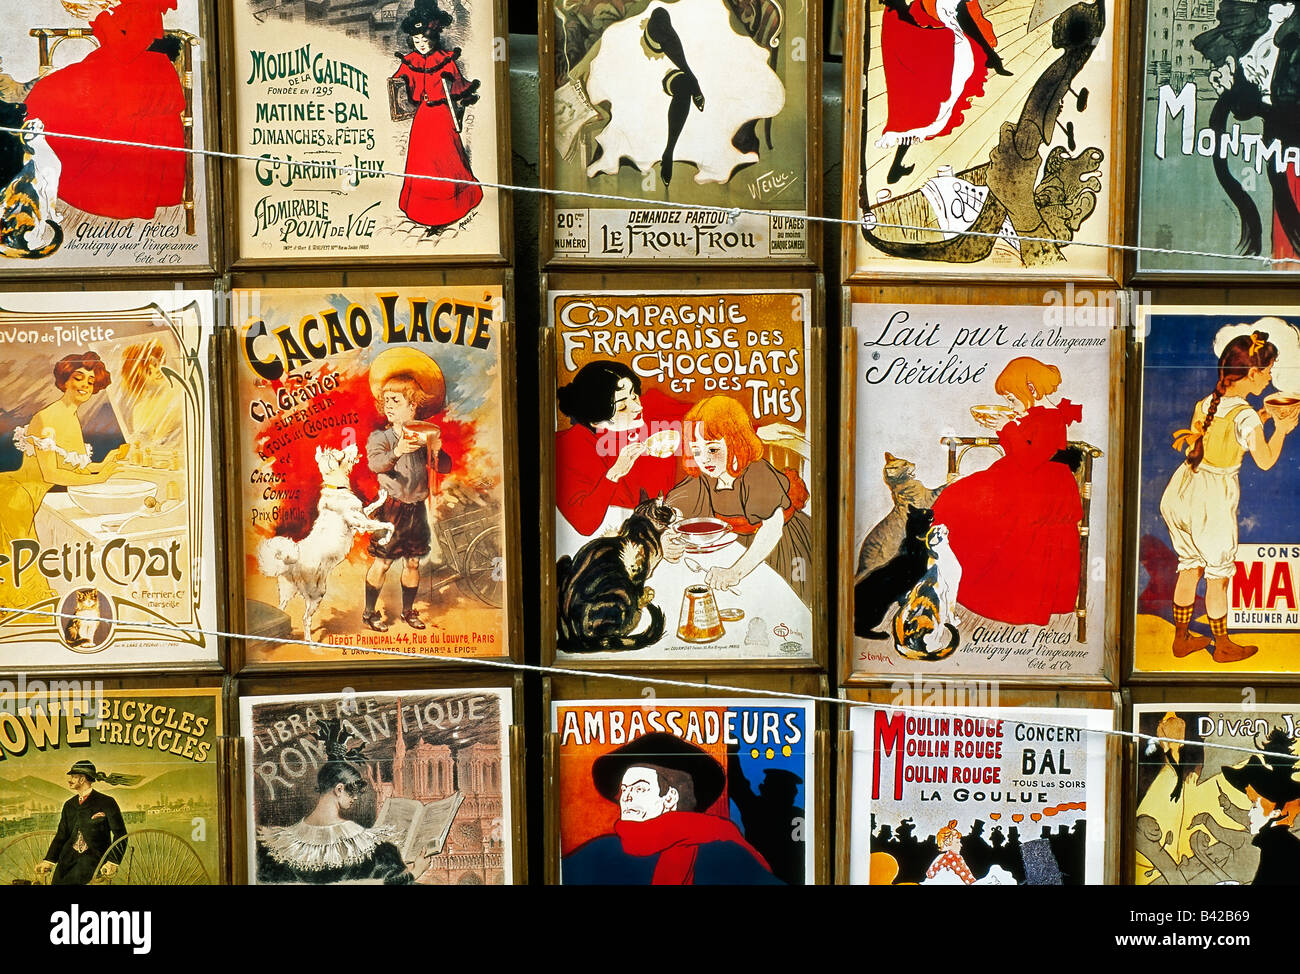 France, Paris, French Collection postcards with art and ads from before the war - Stock Image